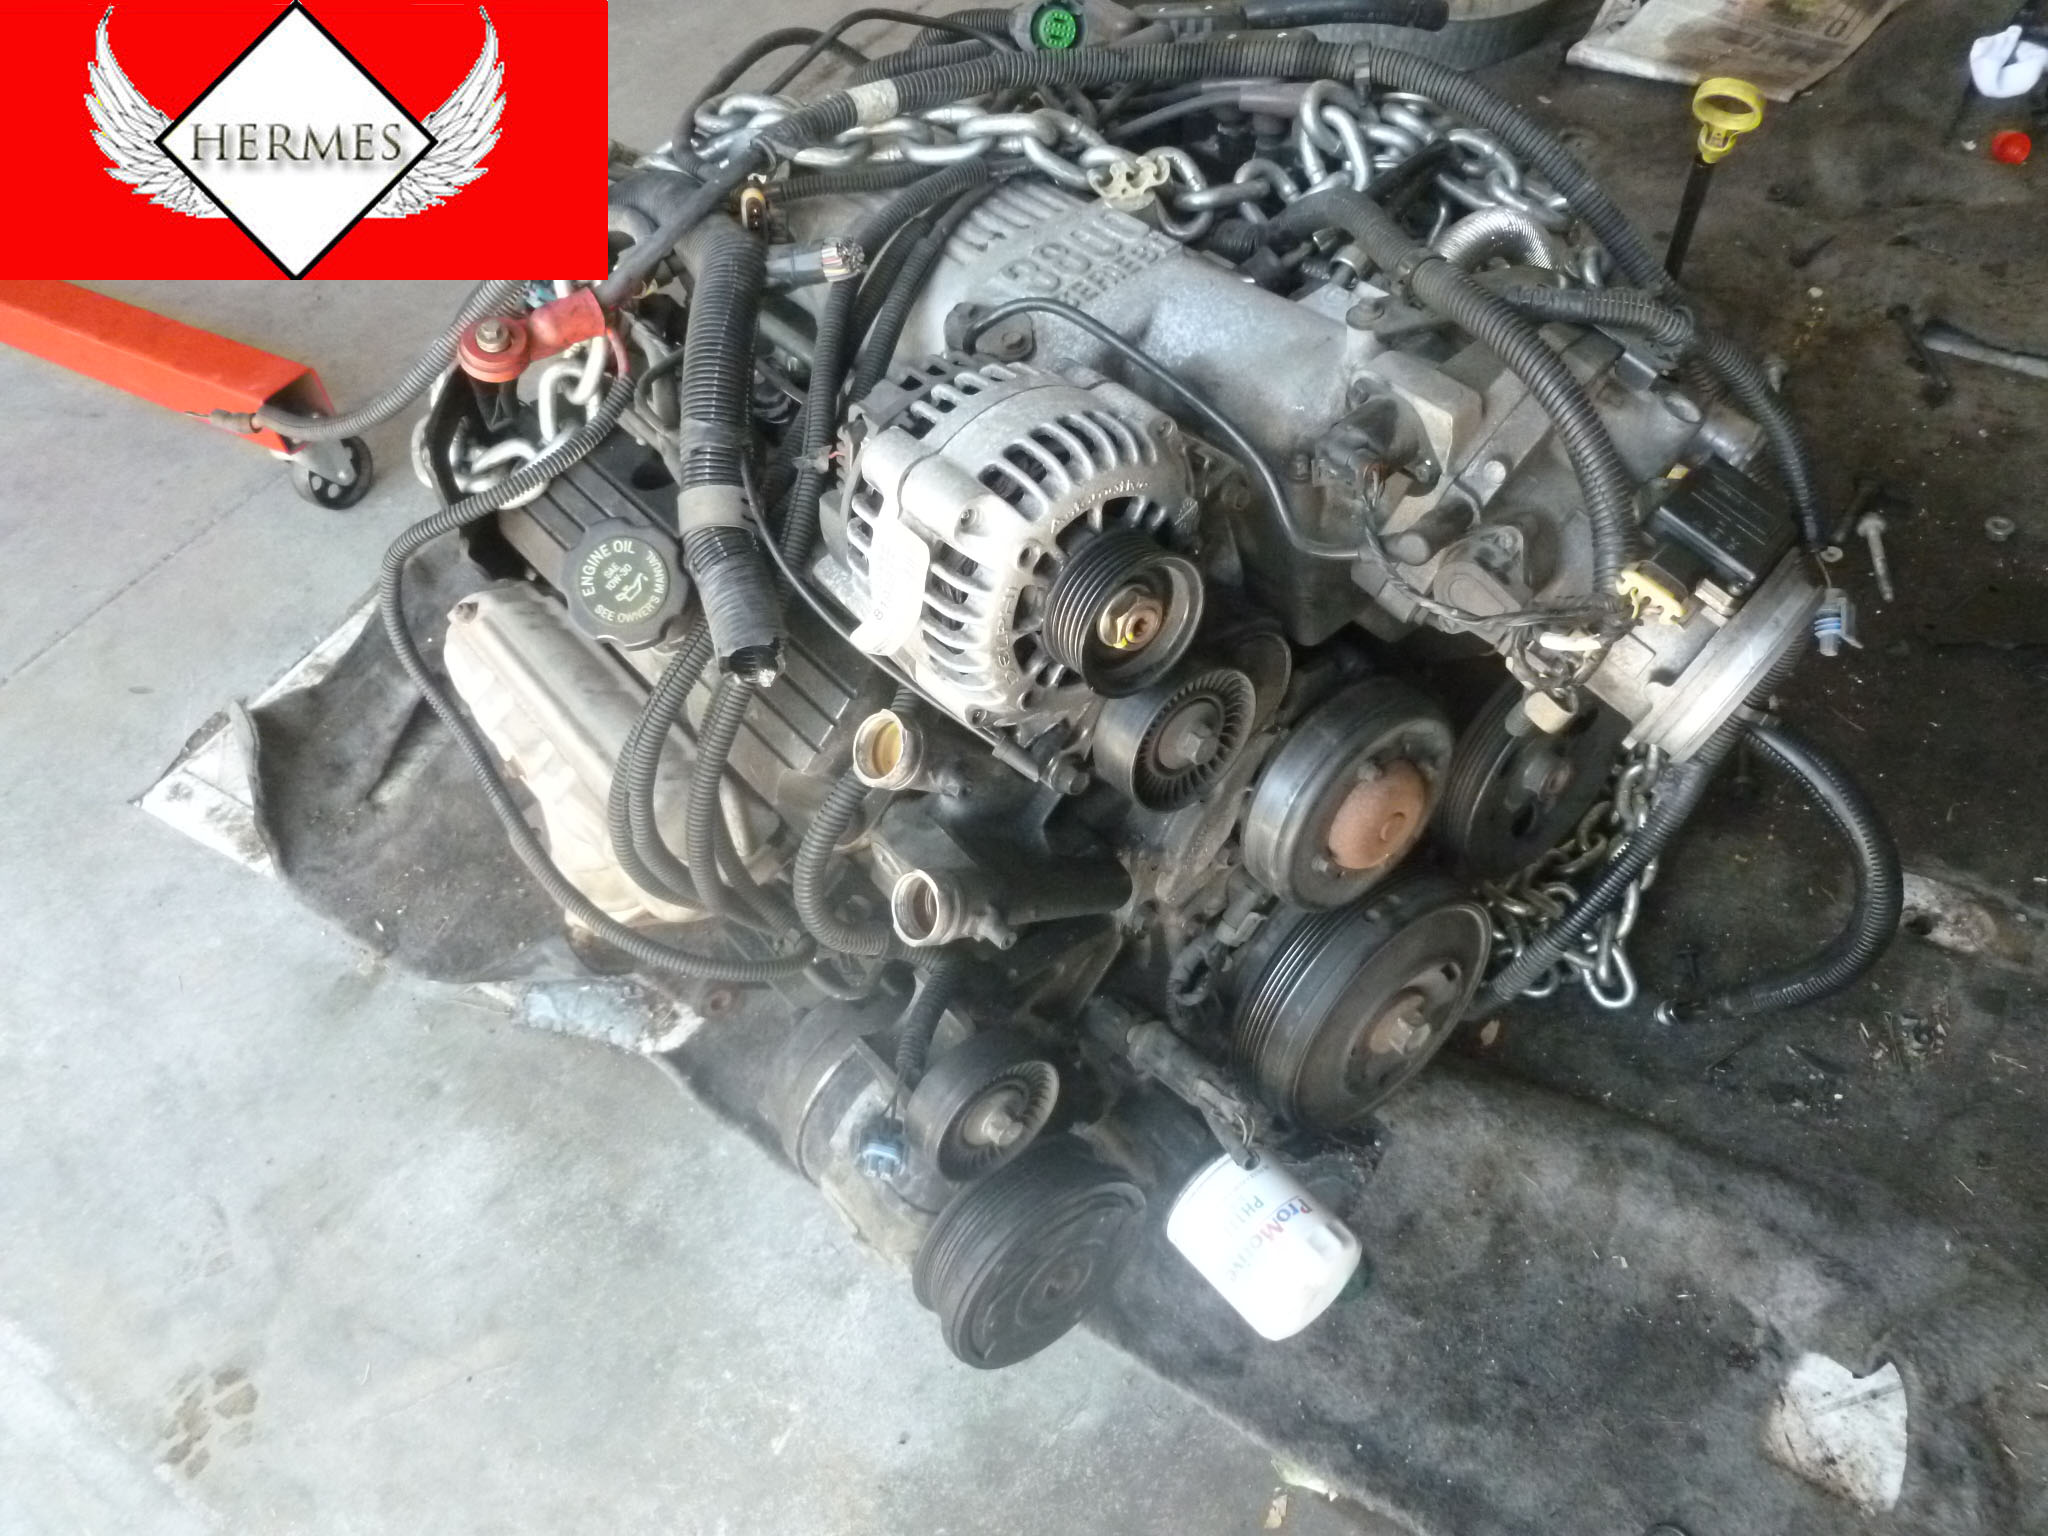 1995 Chevy Camaro 3 8L 3800 Series 2 V6 Engine Motor plete